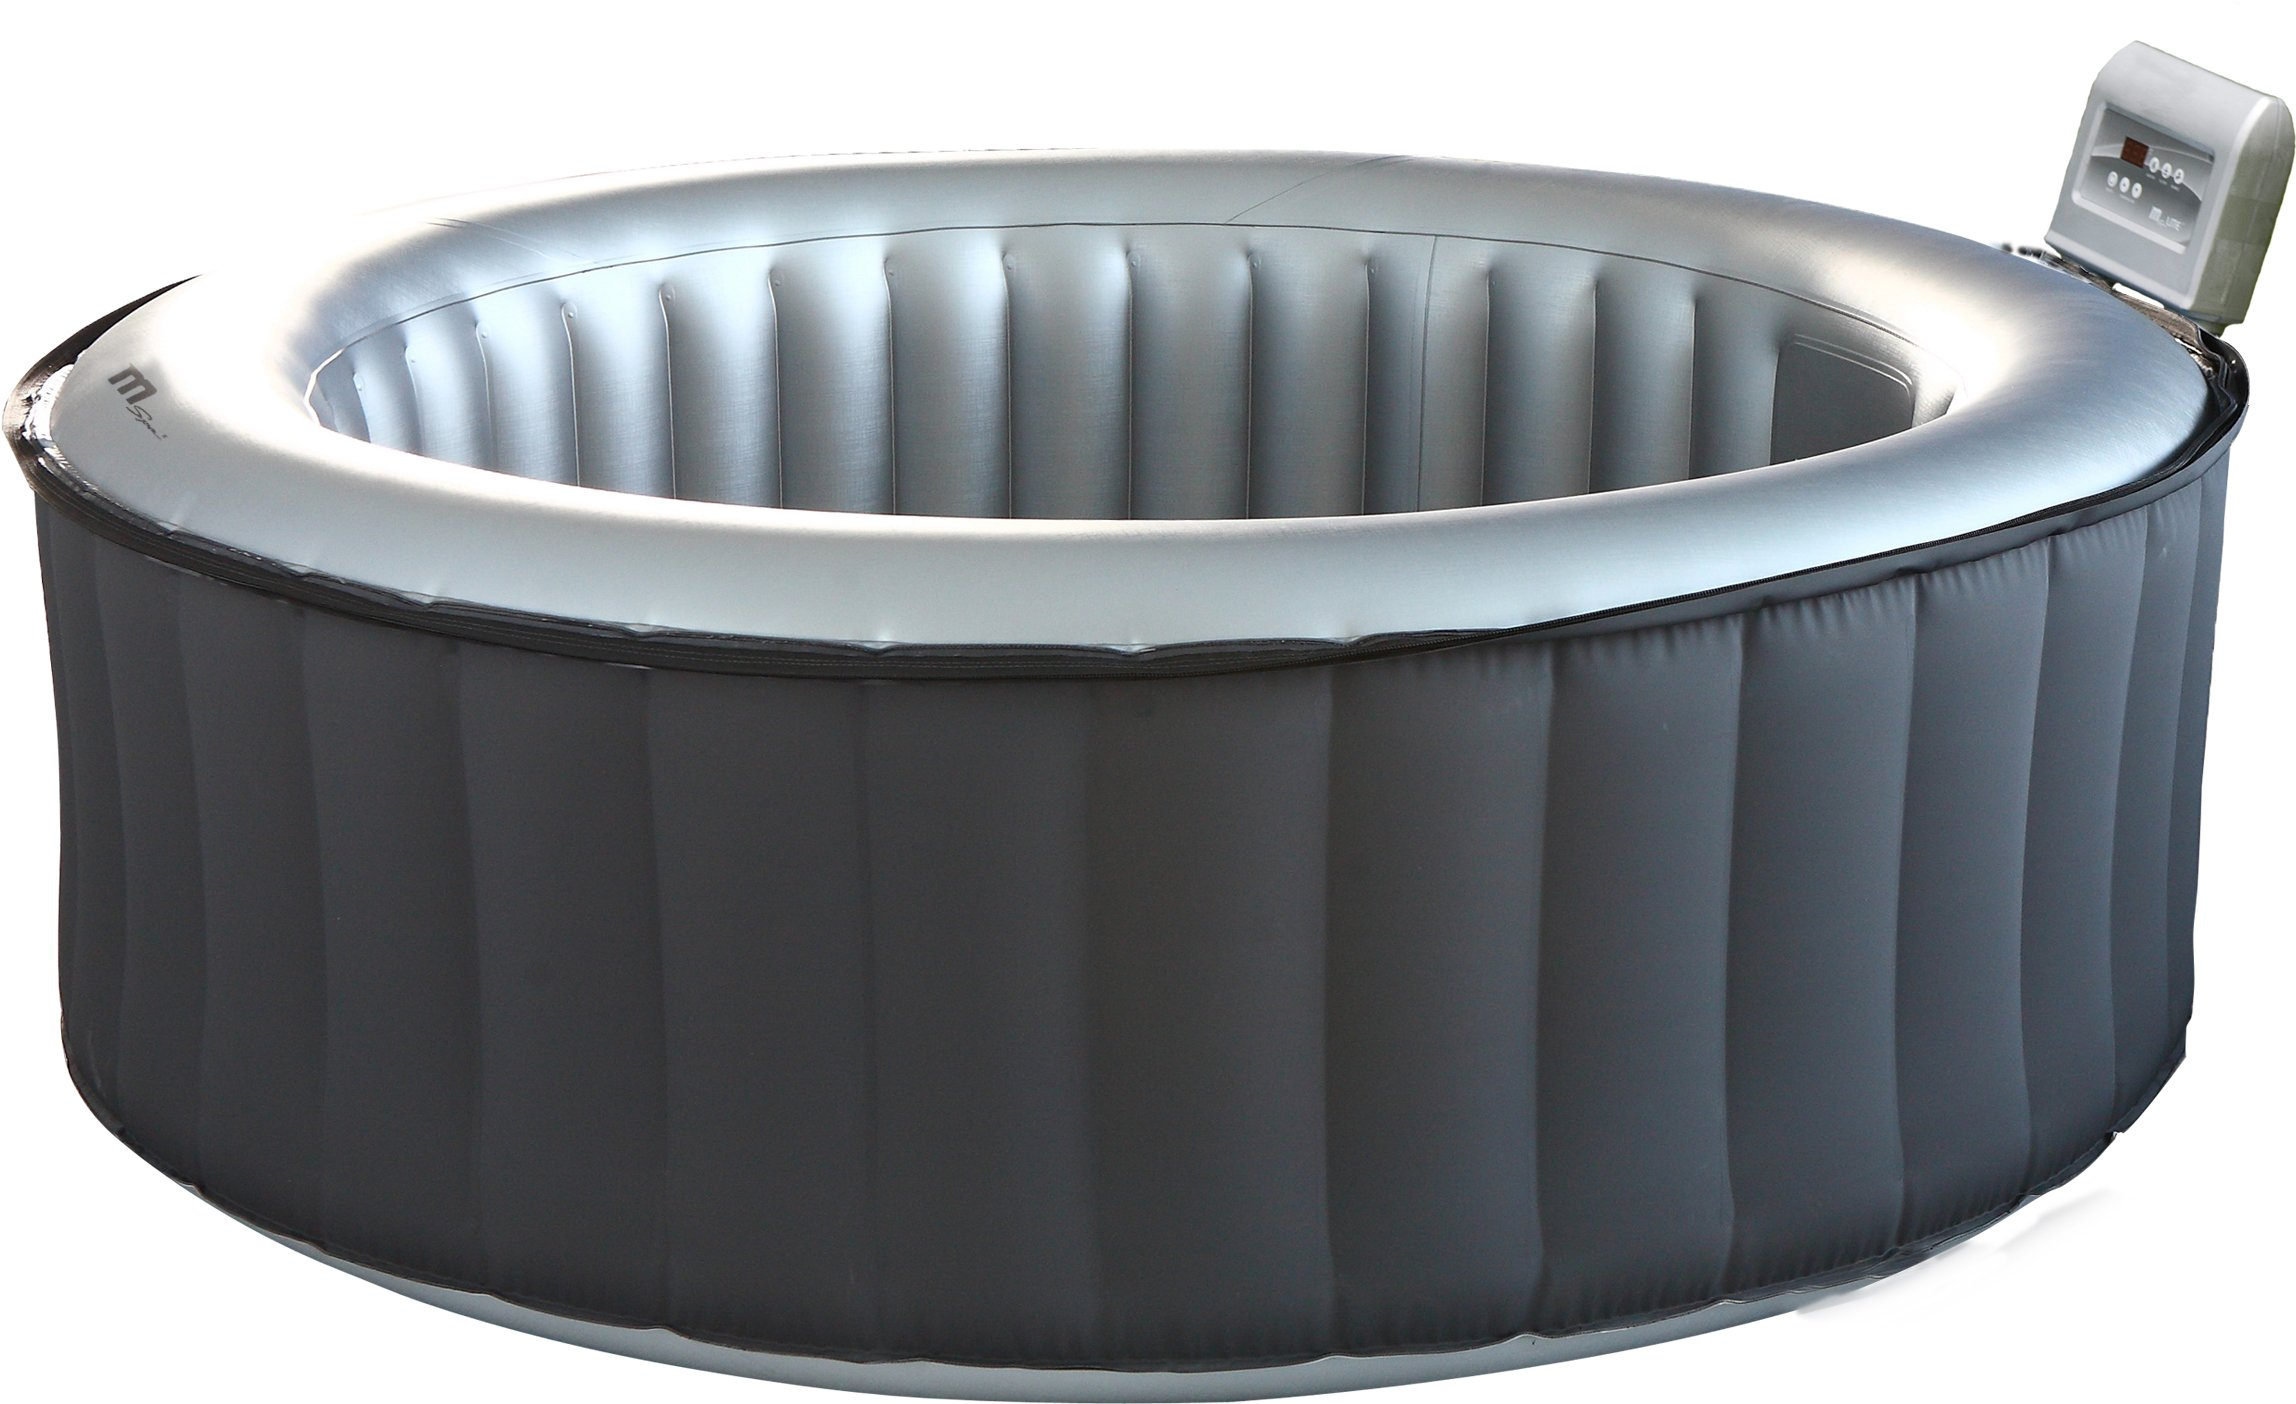 MSPA Lite Silver Cloud Relaxation and Hydrotherapy Spa Round 6 Person M-021LS